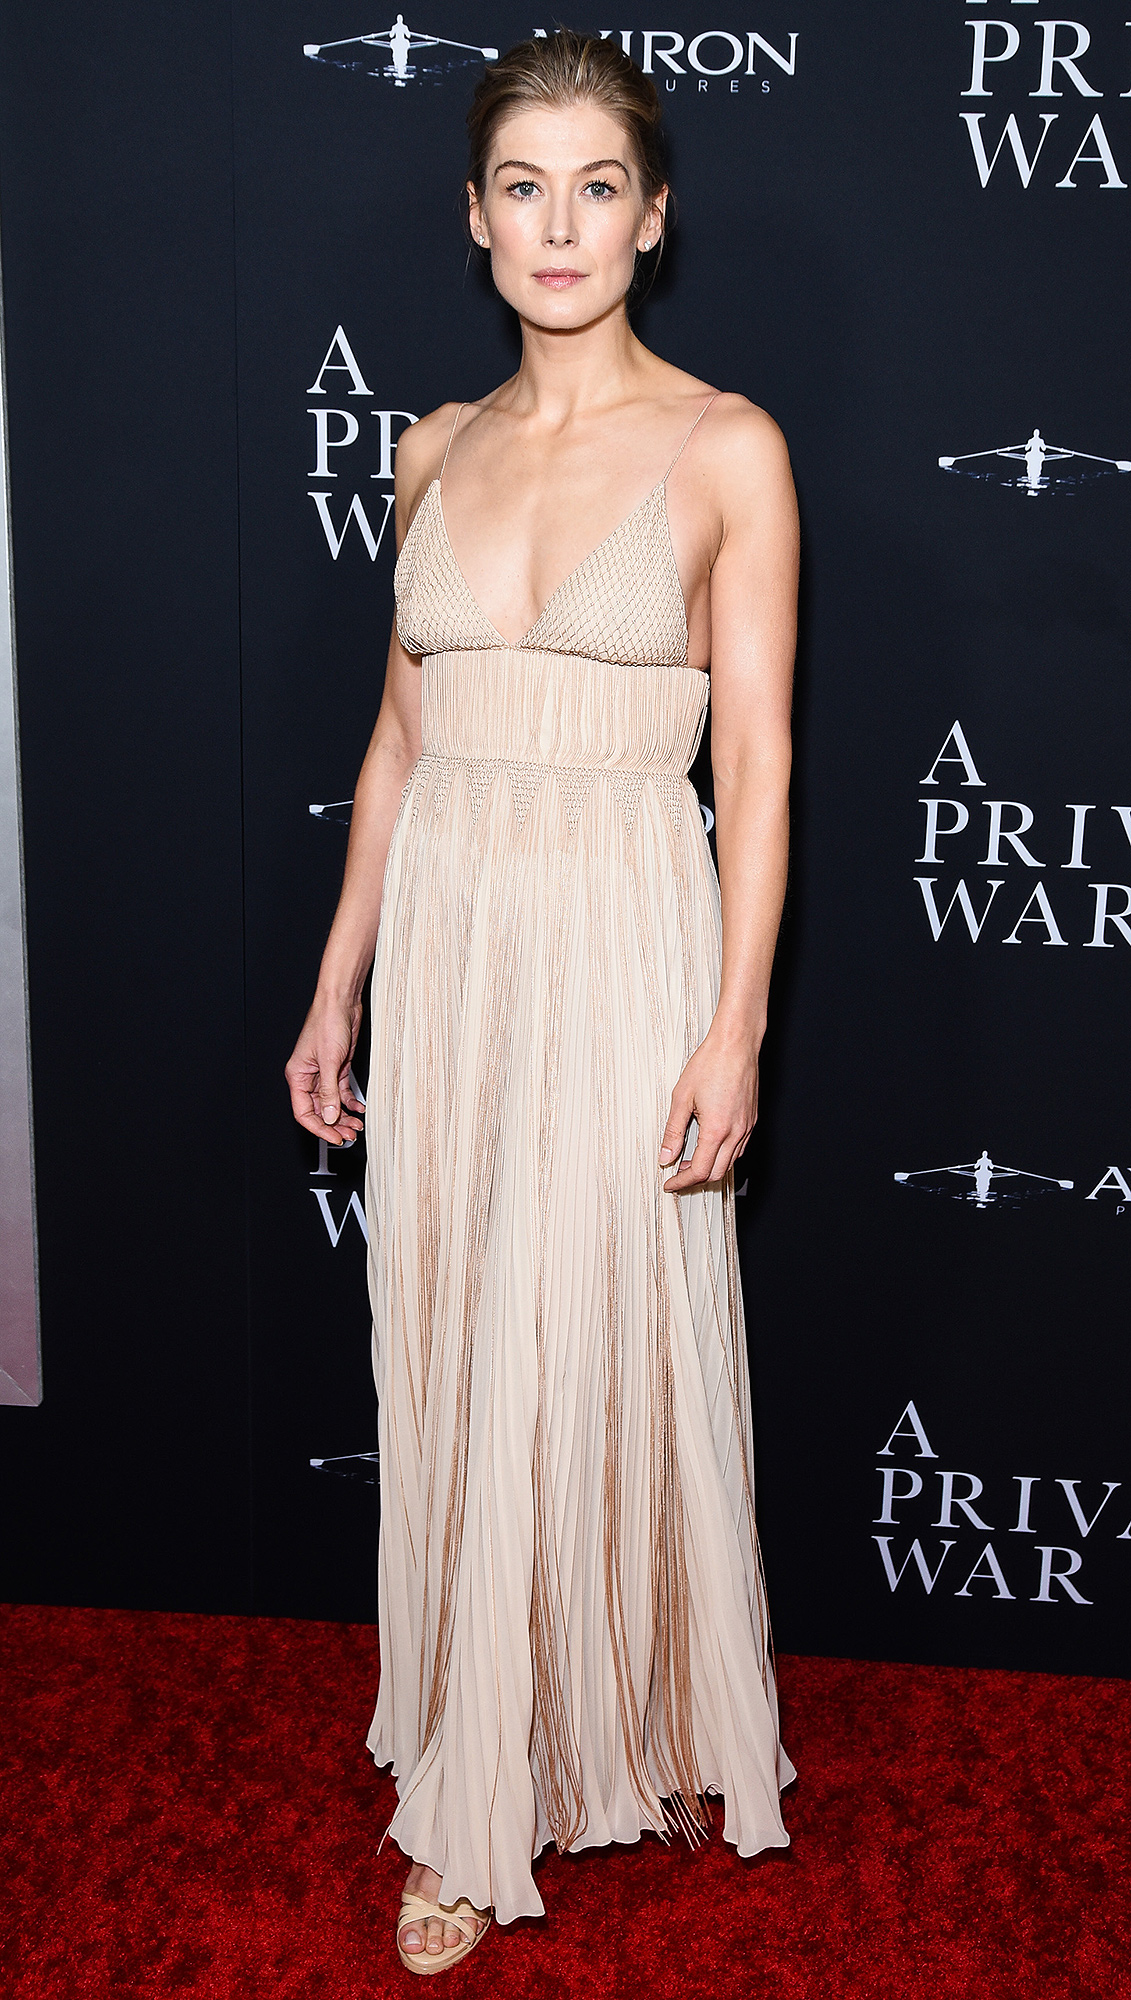 """Aviron Pictures' Los Angeles Premiere Of """"A Private War"""" - Arrivals"""